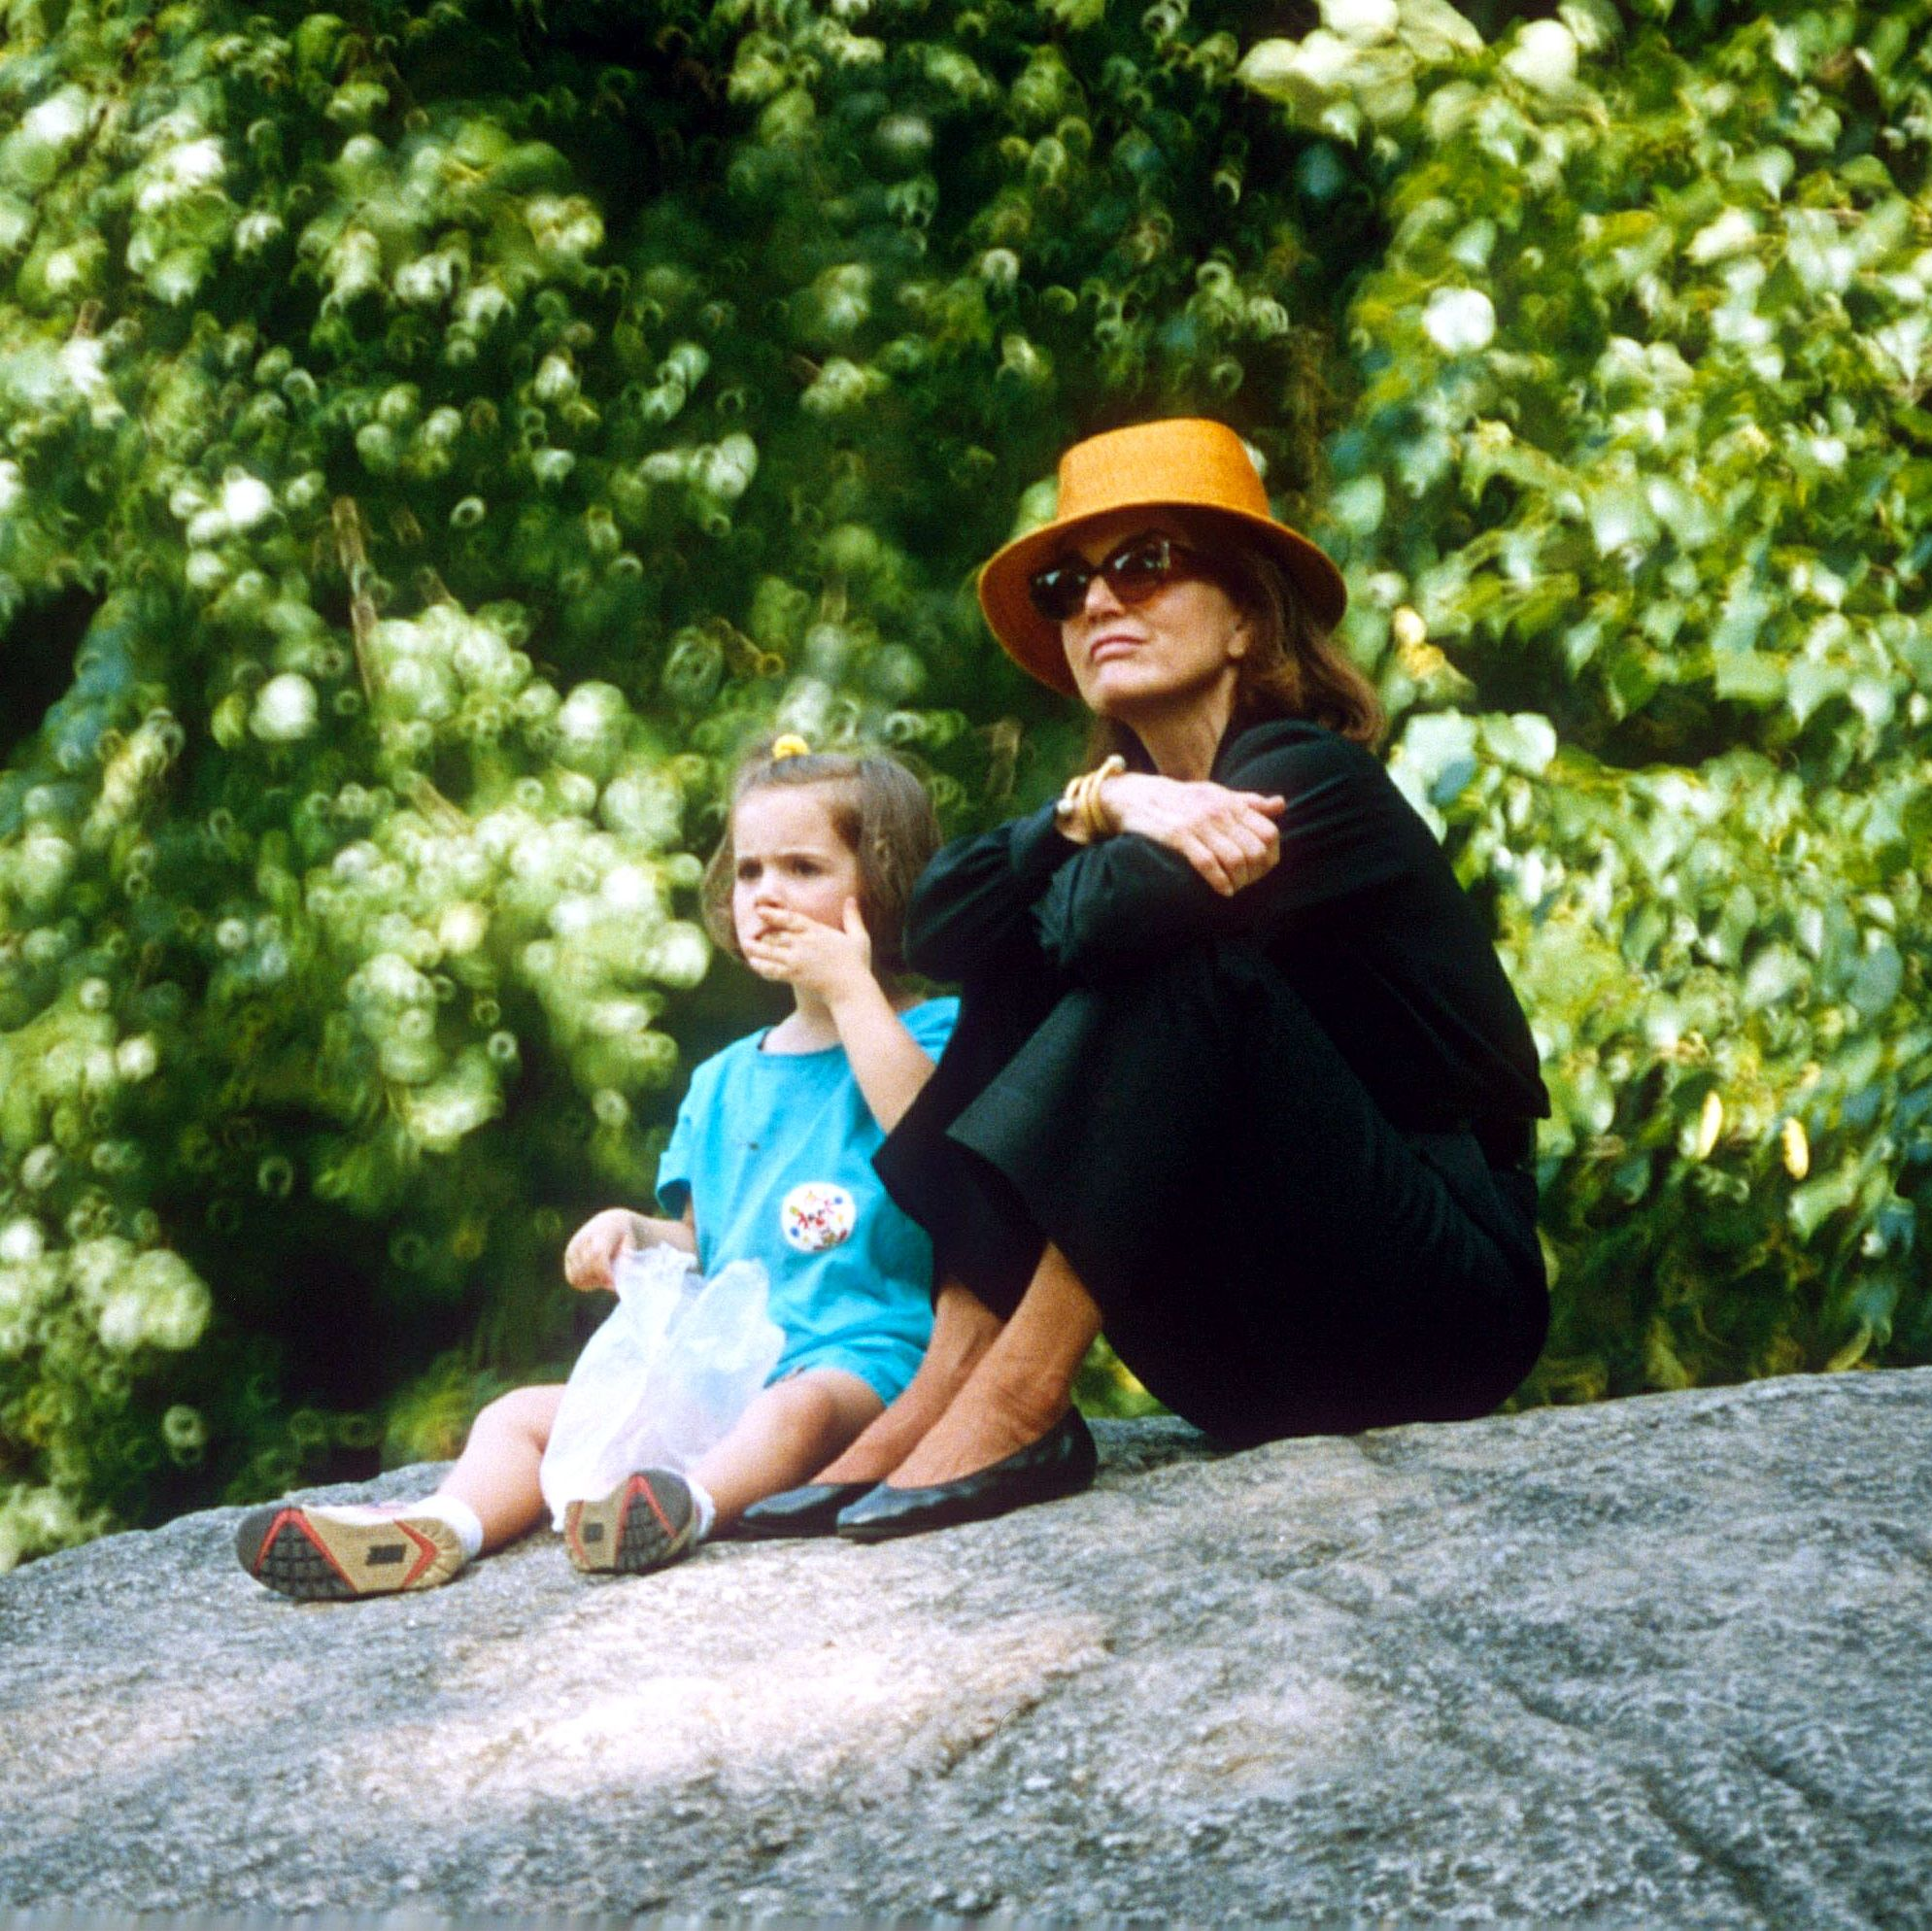 Jackie with one of her granddaughters in Central Park in 1992, two years before she died.